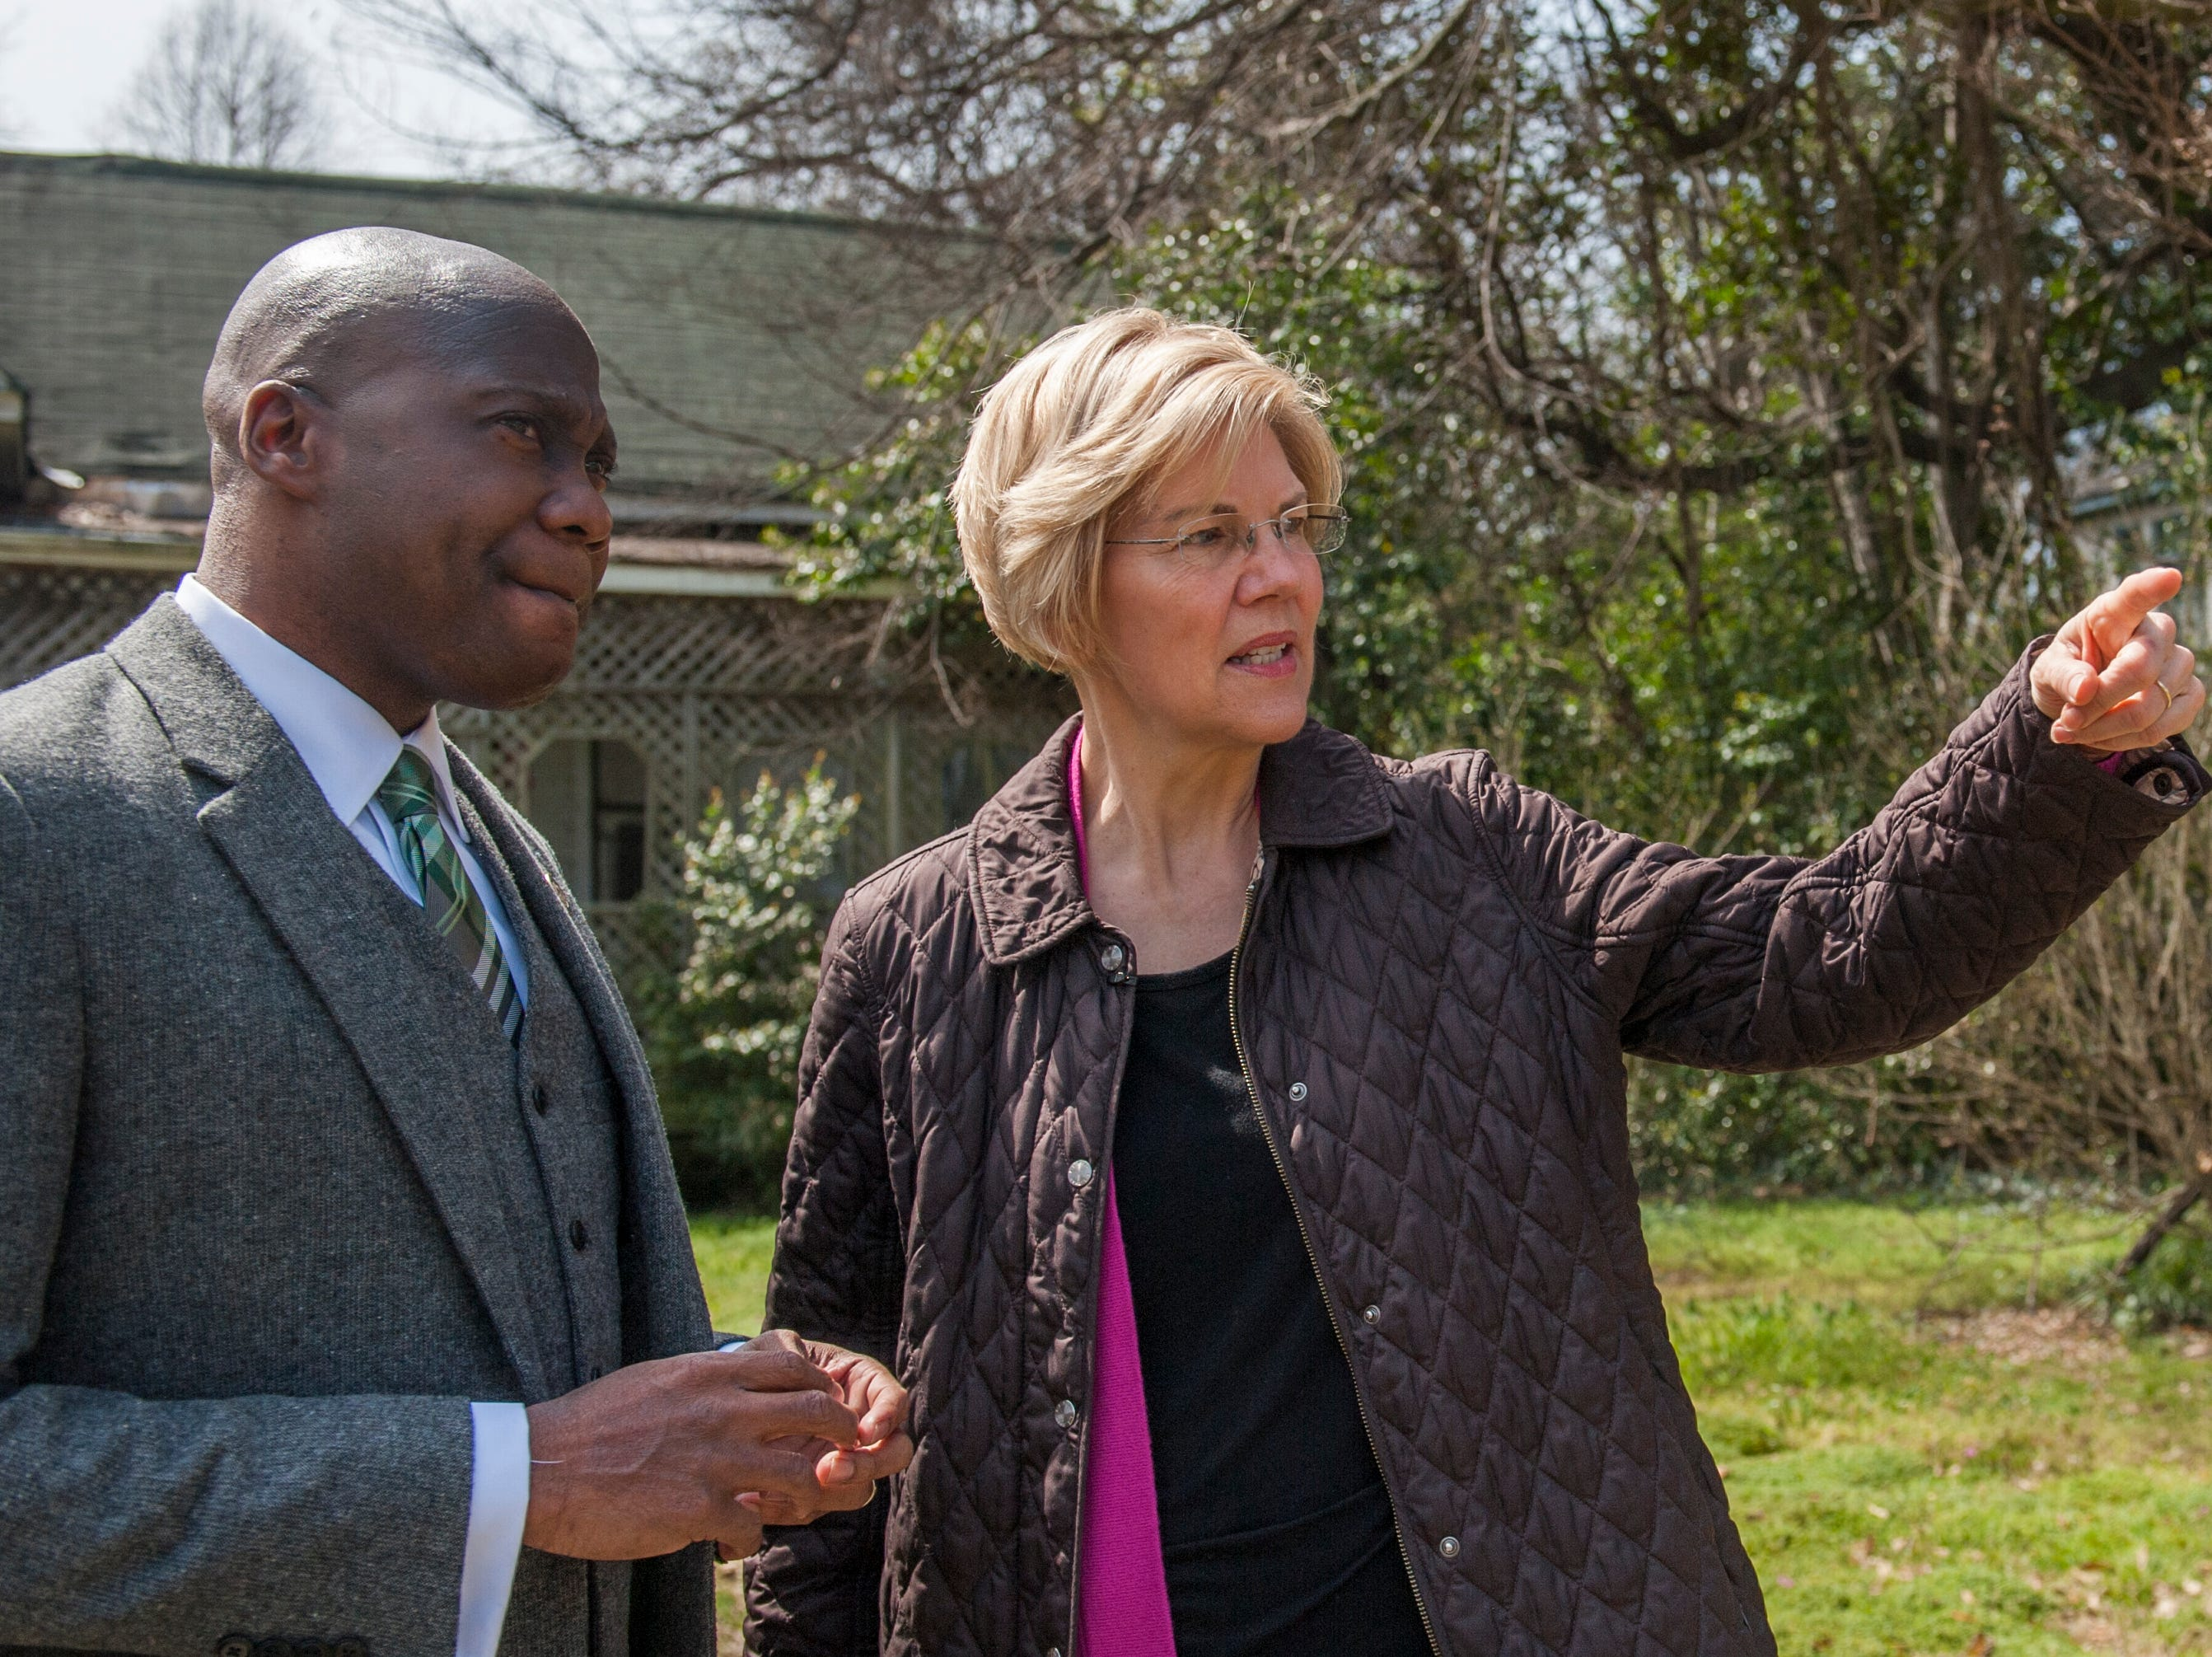 Presidential candidate Sen. Elizabeth Warren, D-Mass., and Greenville Mayor Erick Simmons discuss the progress Greenville has made with housing issues and how much still needs to be done as they walk tree-lined Central Street, once filled, but now left with vacant houses and empty lots. While in Greenville , Monday, March 18, 2019, Warren promoted the affordable housing bill she's rolled out as part of her 2020 campaign for presidency.